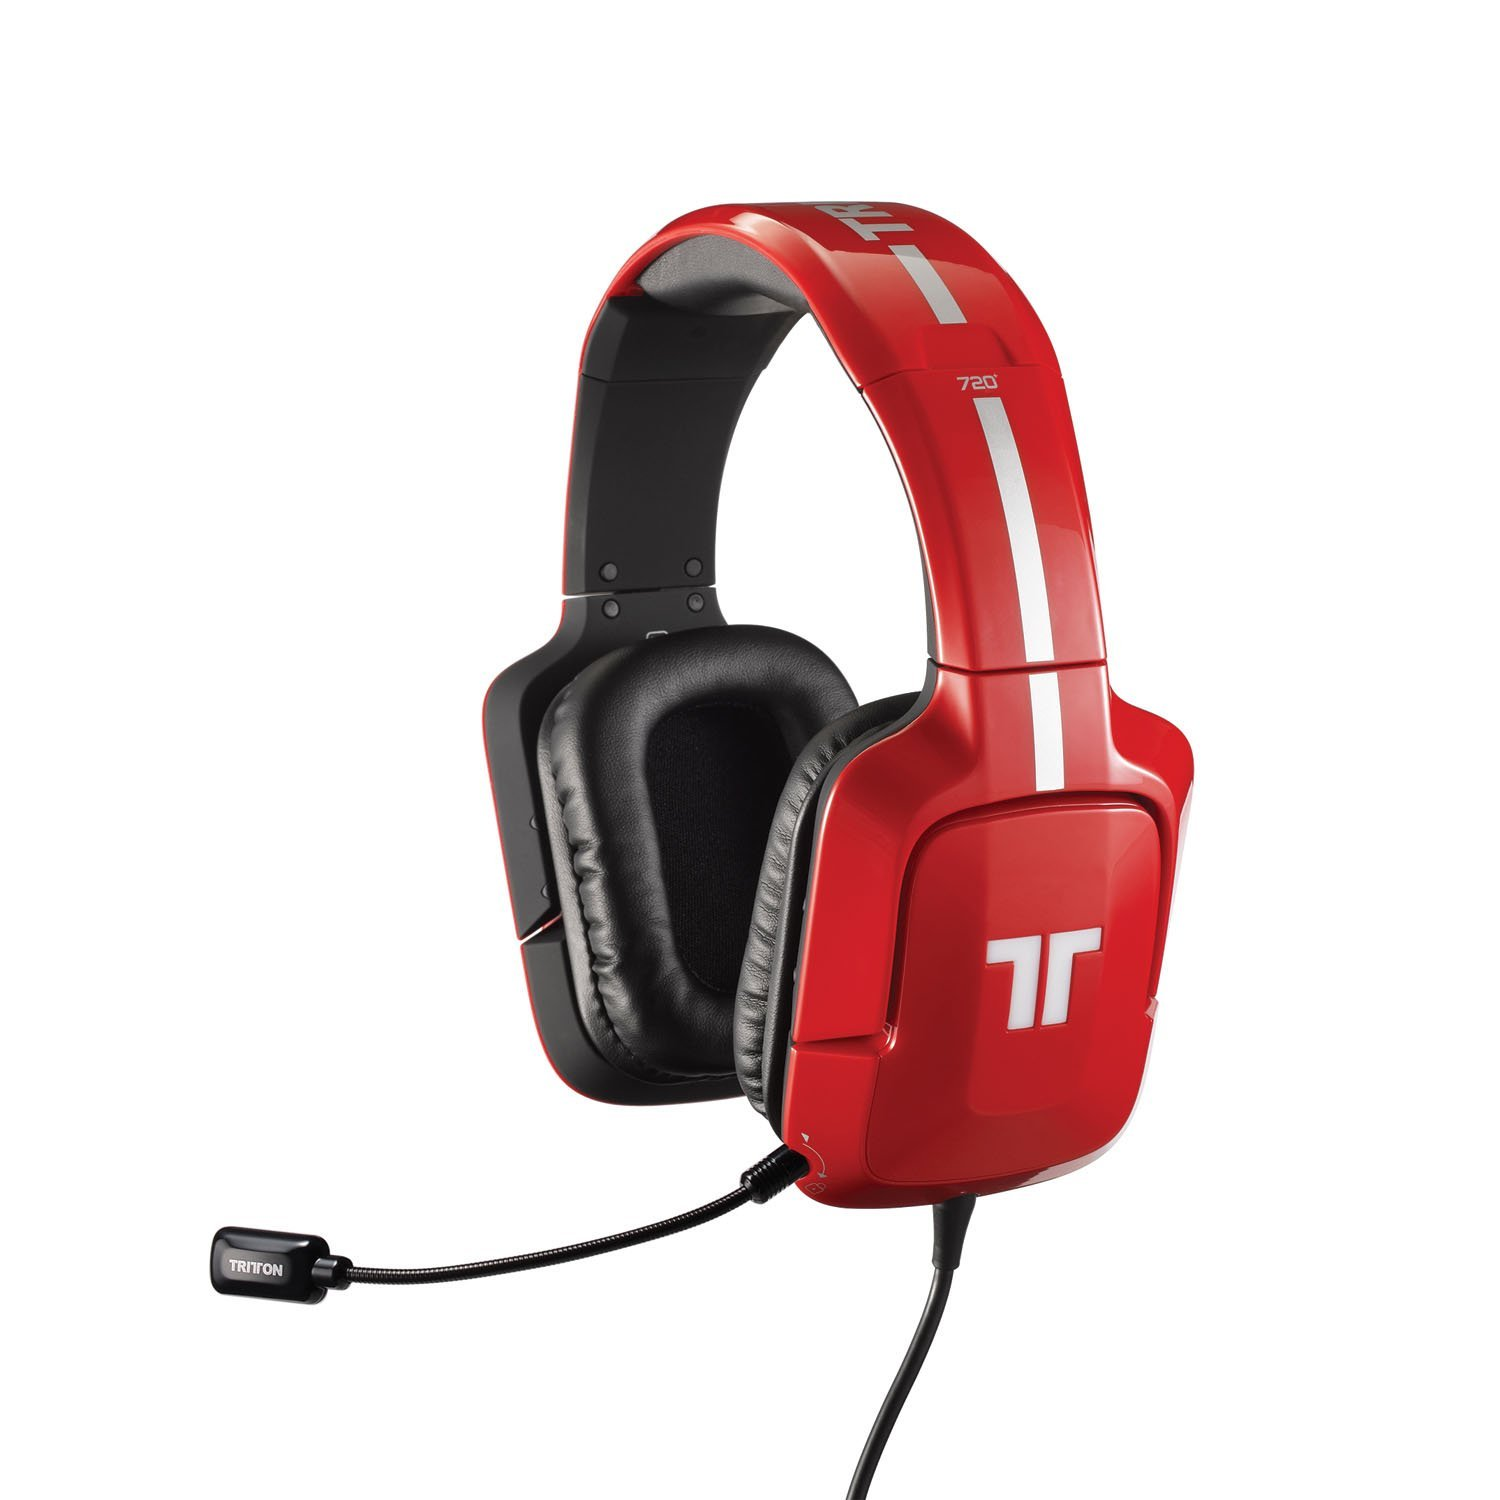 tritton 720 7 1 surround headset im test. Black Bedroom Furniture Sets. Home Design Ideas